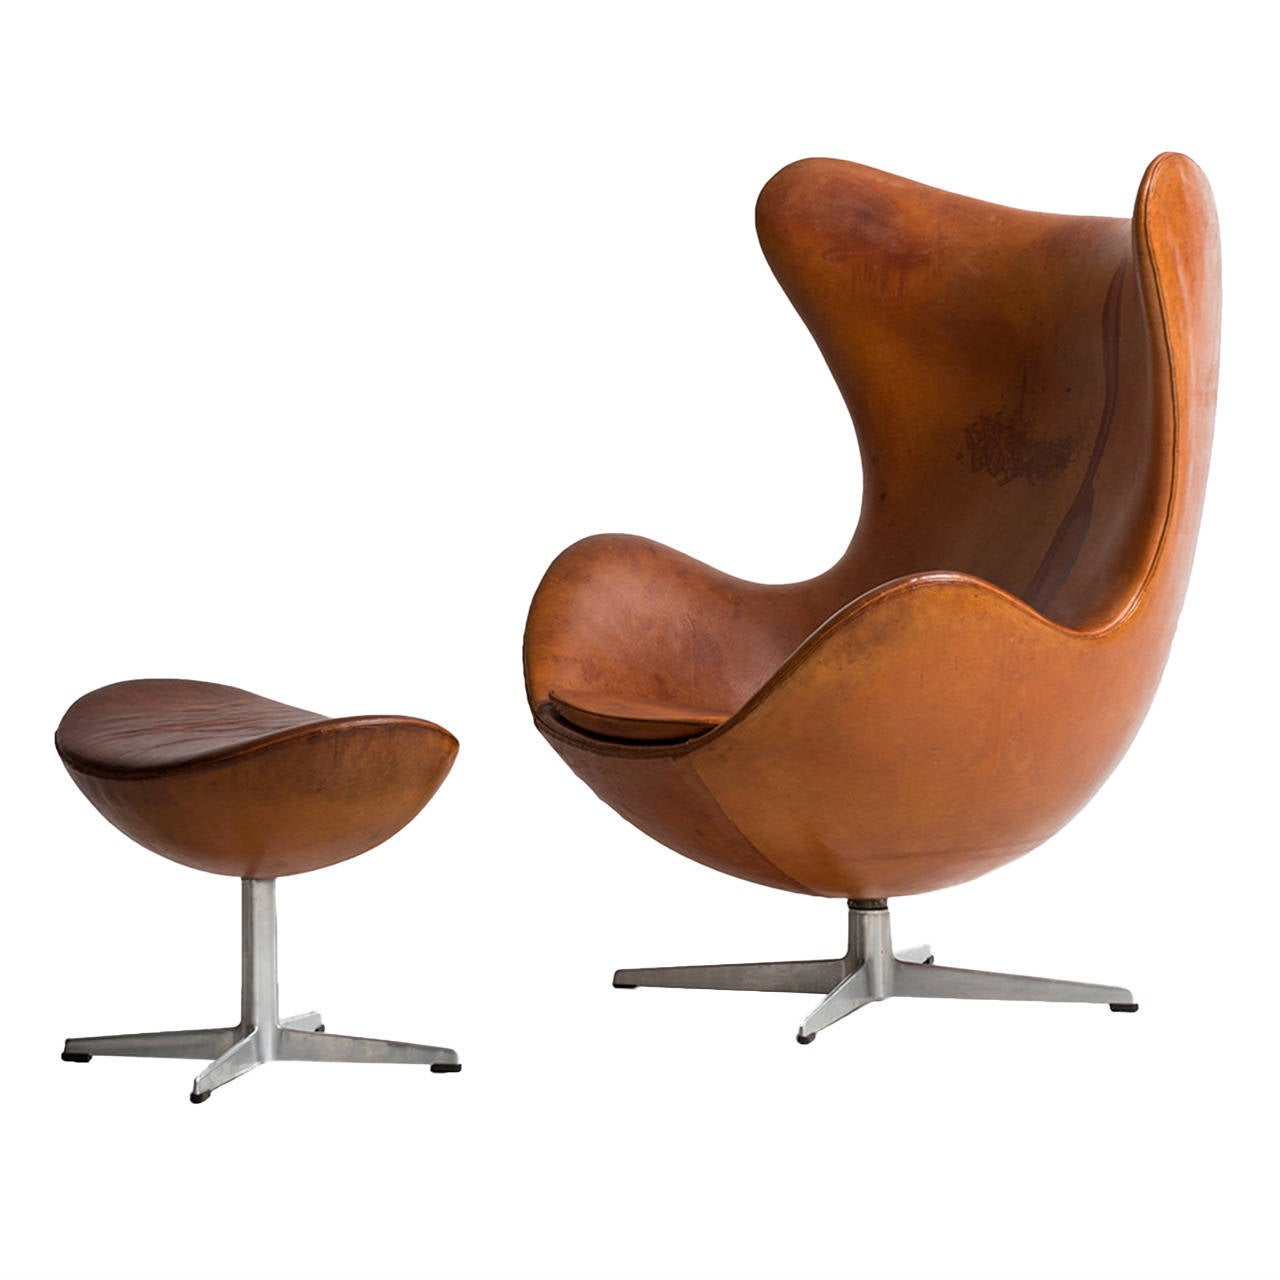 arne jacobsen egg chair in original cognac brown leather by fritz hansen for sale at 1stdibs. Black Bedroom Furniture Sets. Home Design Ideas